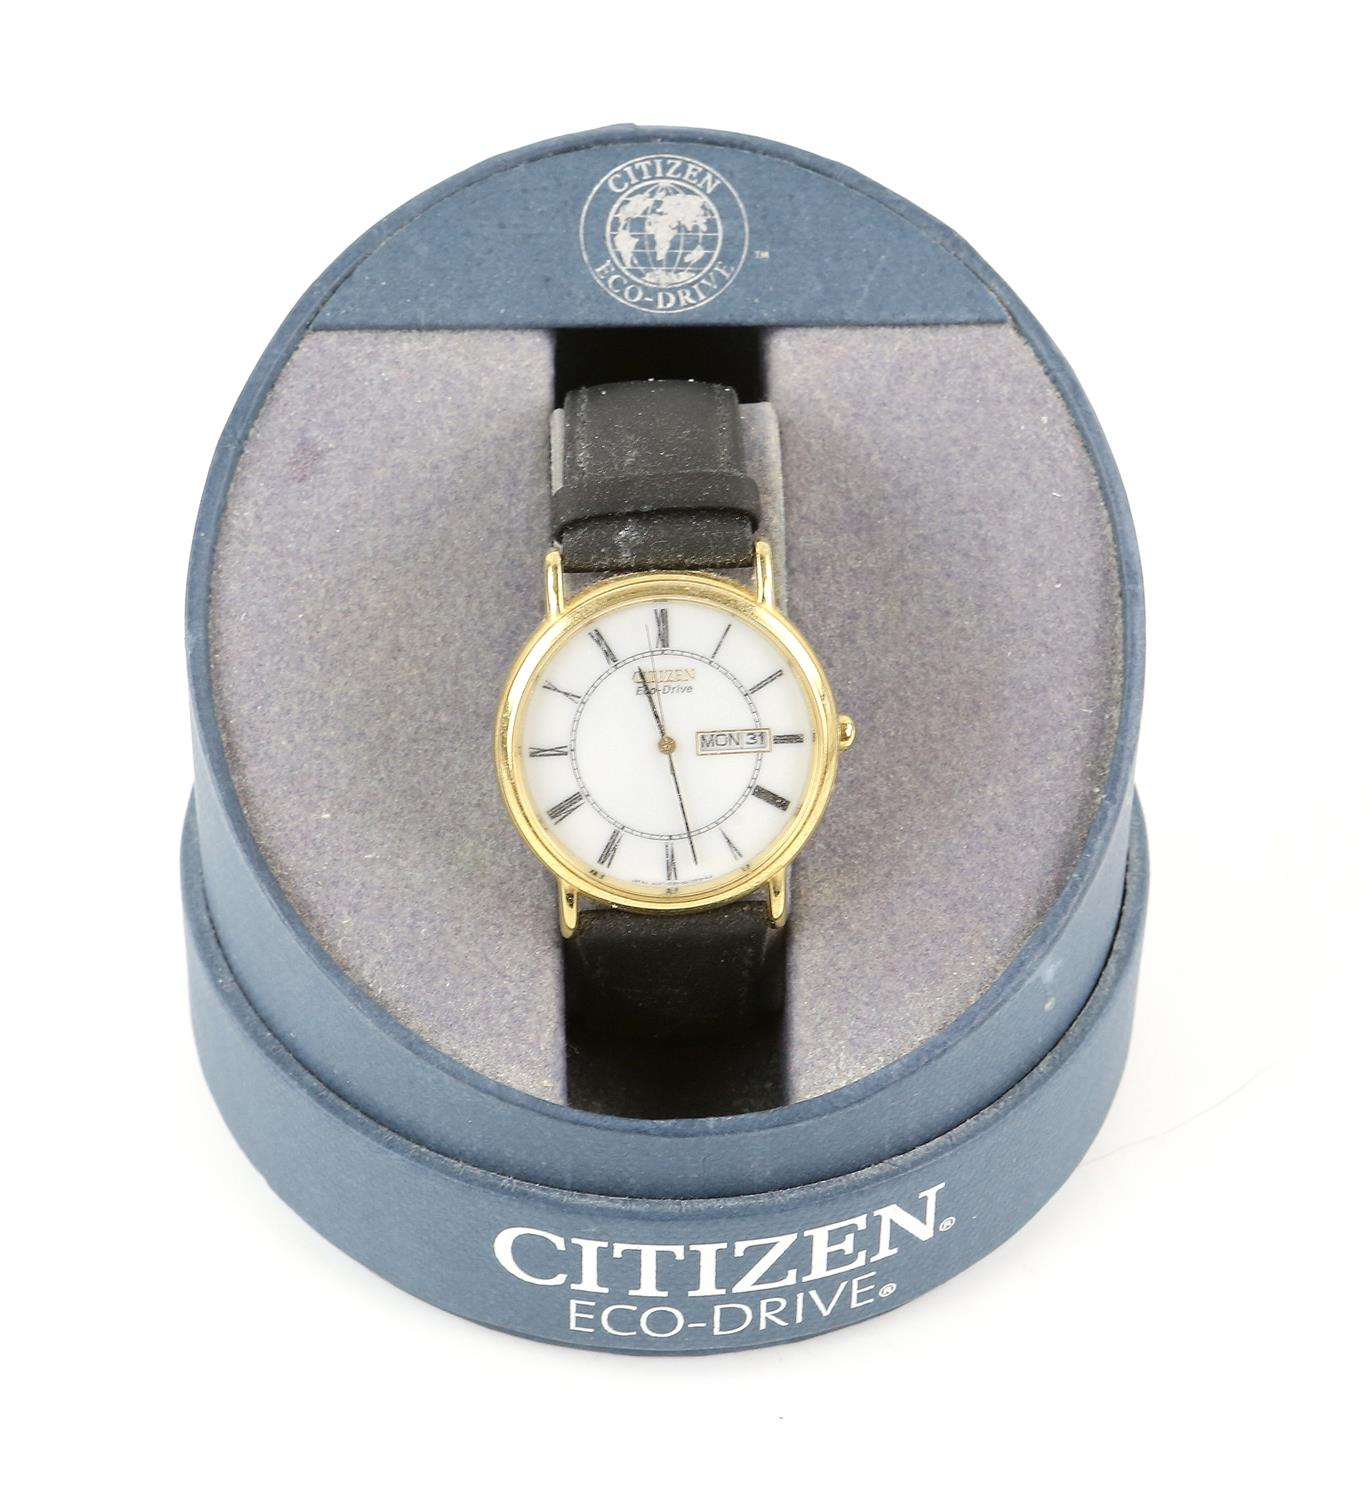 Raymond Weil, A Gentleman's reference 6549 dress watch with white enamel dial, baton hour markers, - Image 8 of 11